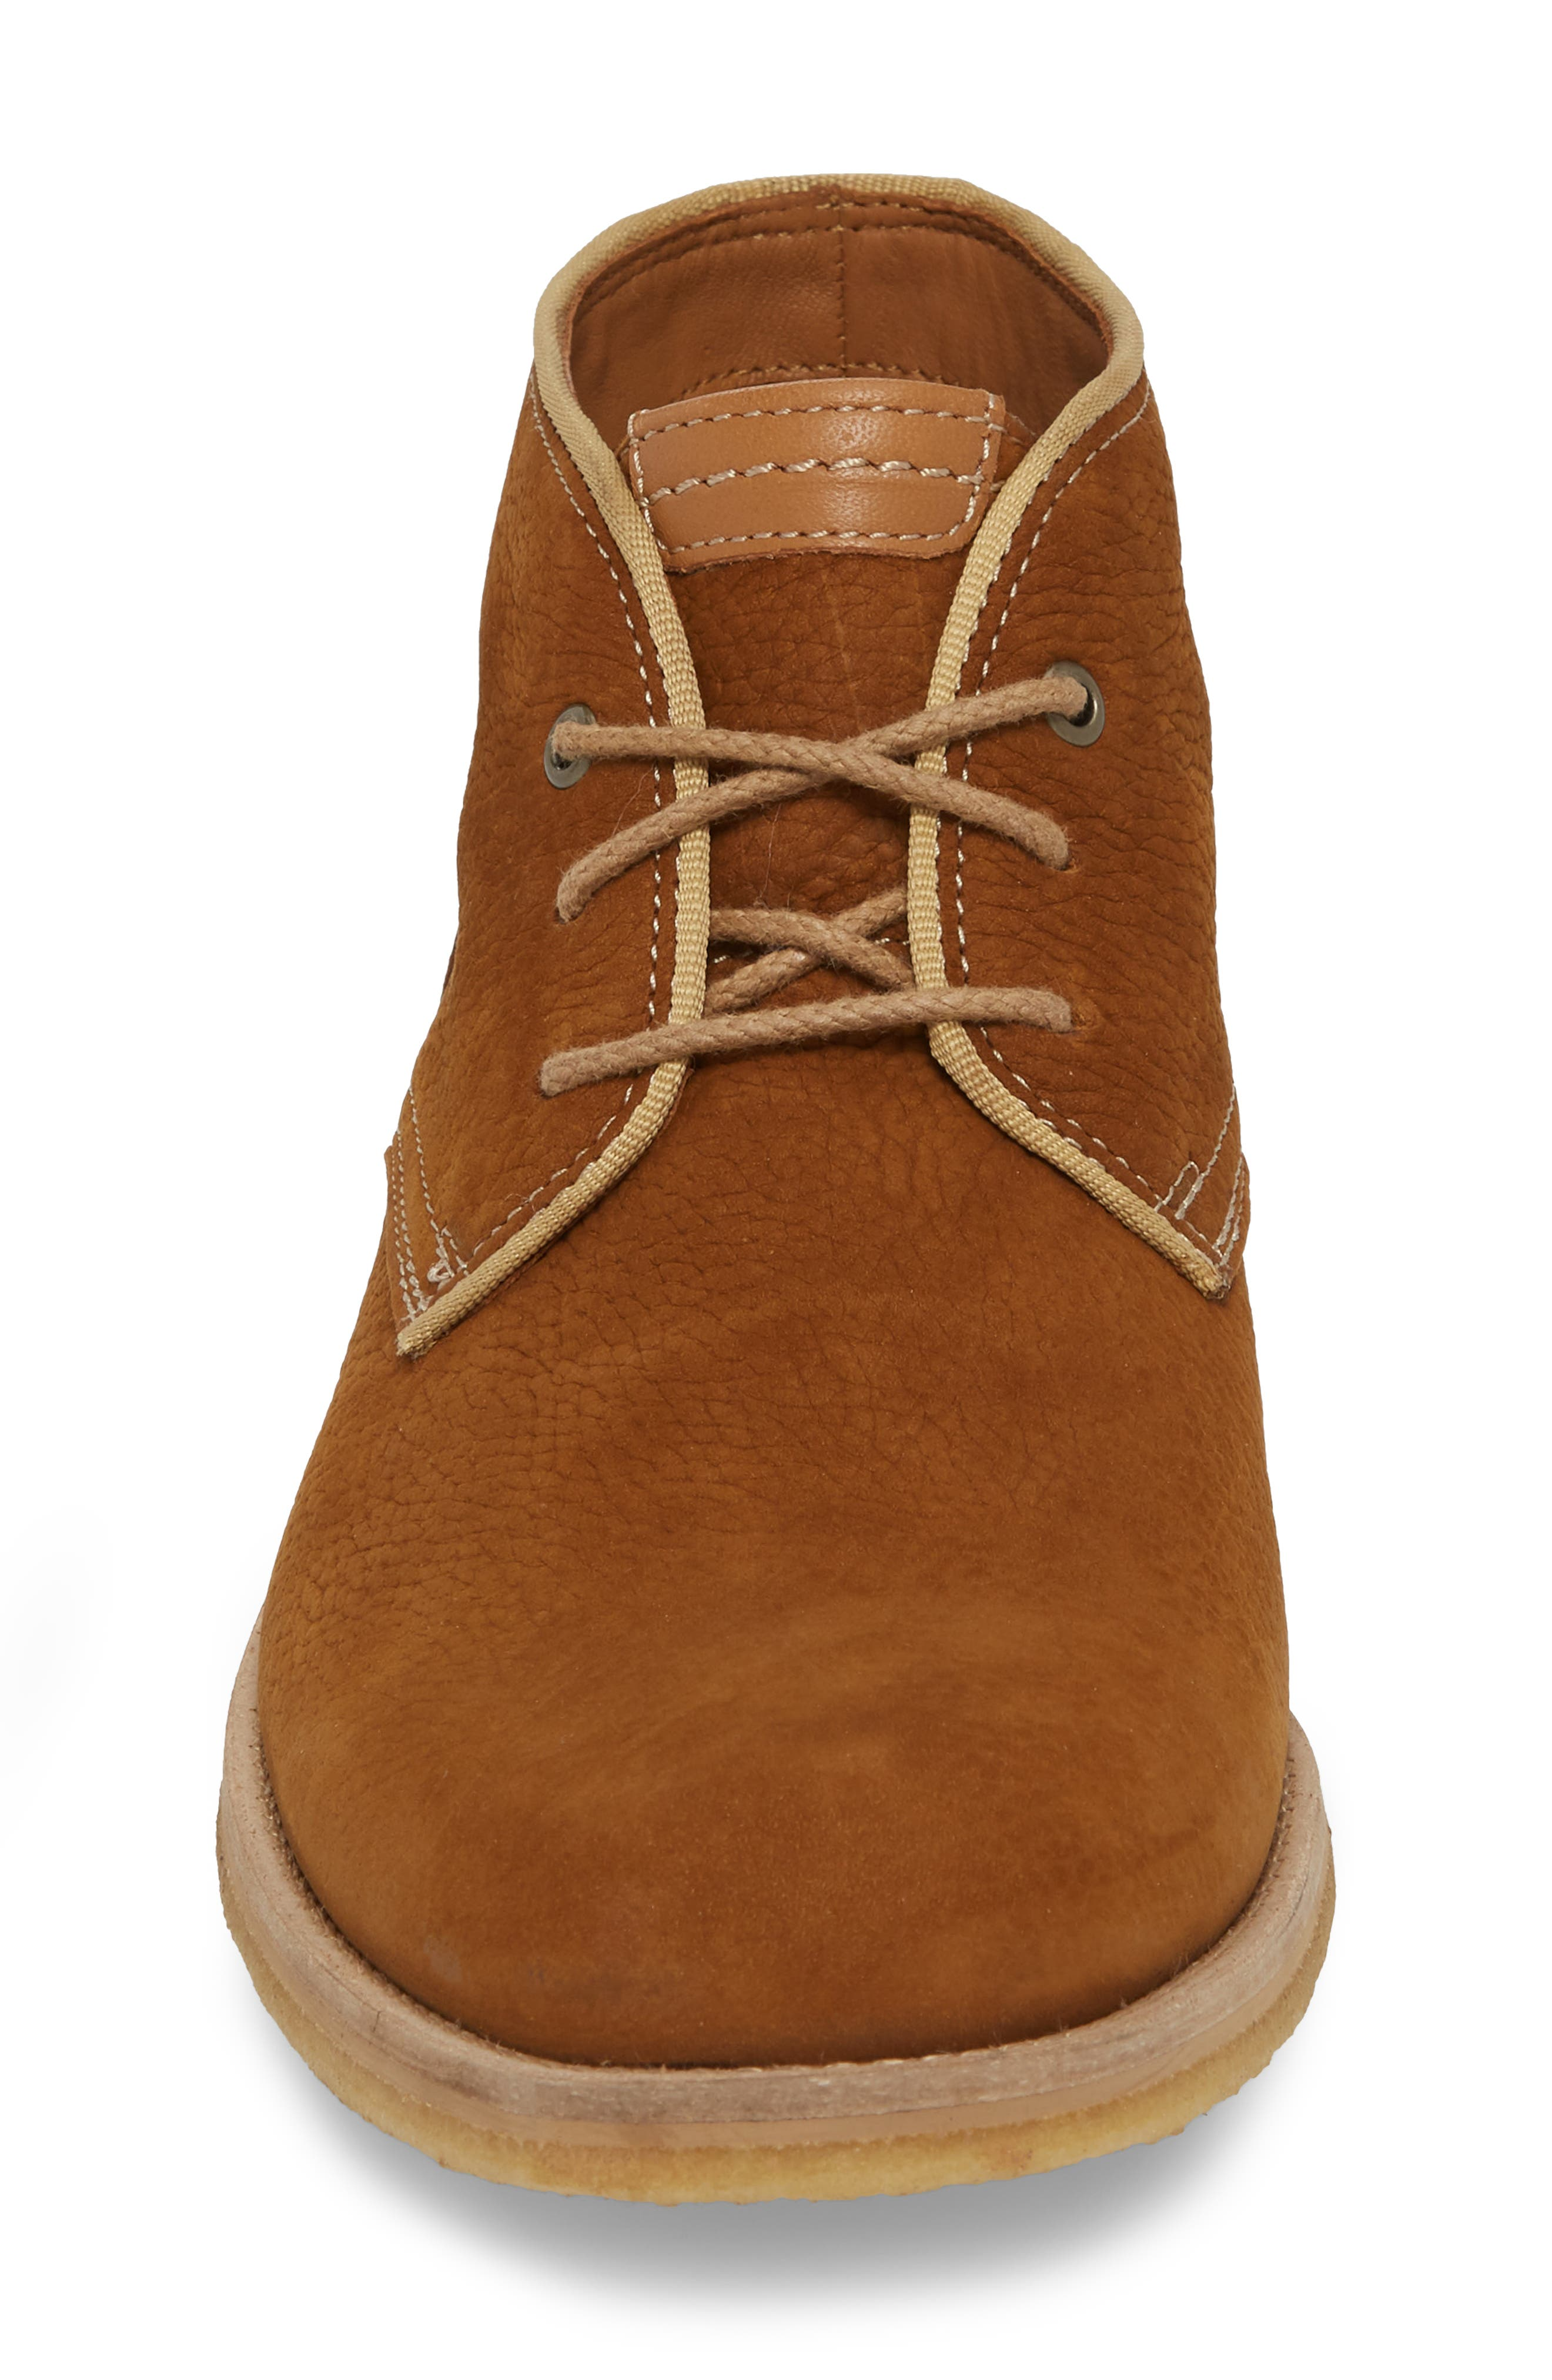 Howell Water Resistant Chukka Boot,                             Alternate thumbnail 4, color,                             Tan Nubuck Leather